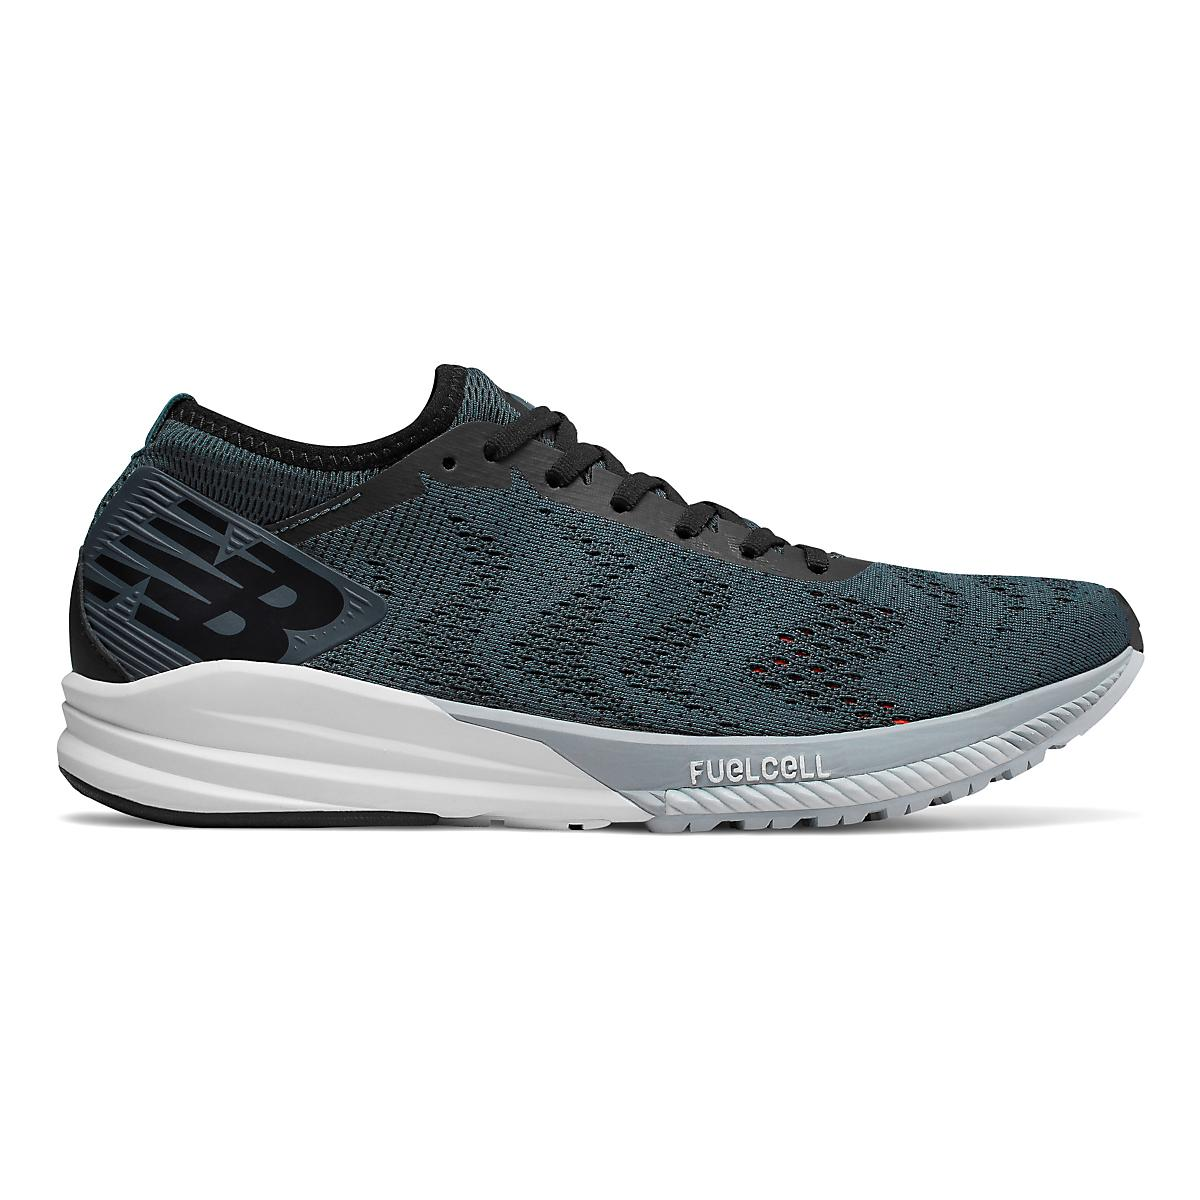 416d5a449bd54 Mens New Balance FuelCell Impulse Running Shoe at Road Runner Sports